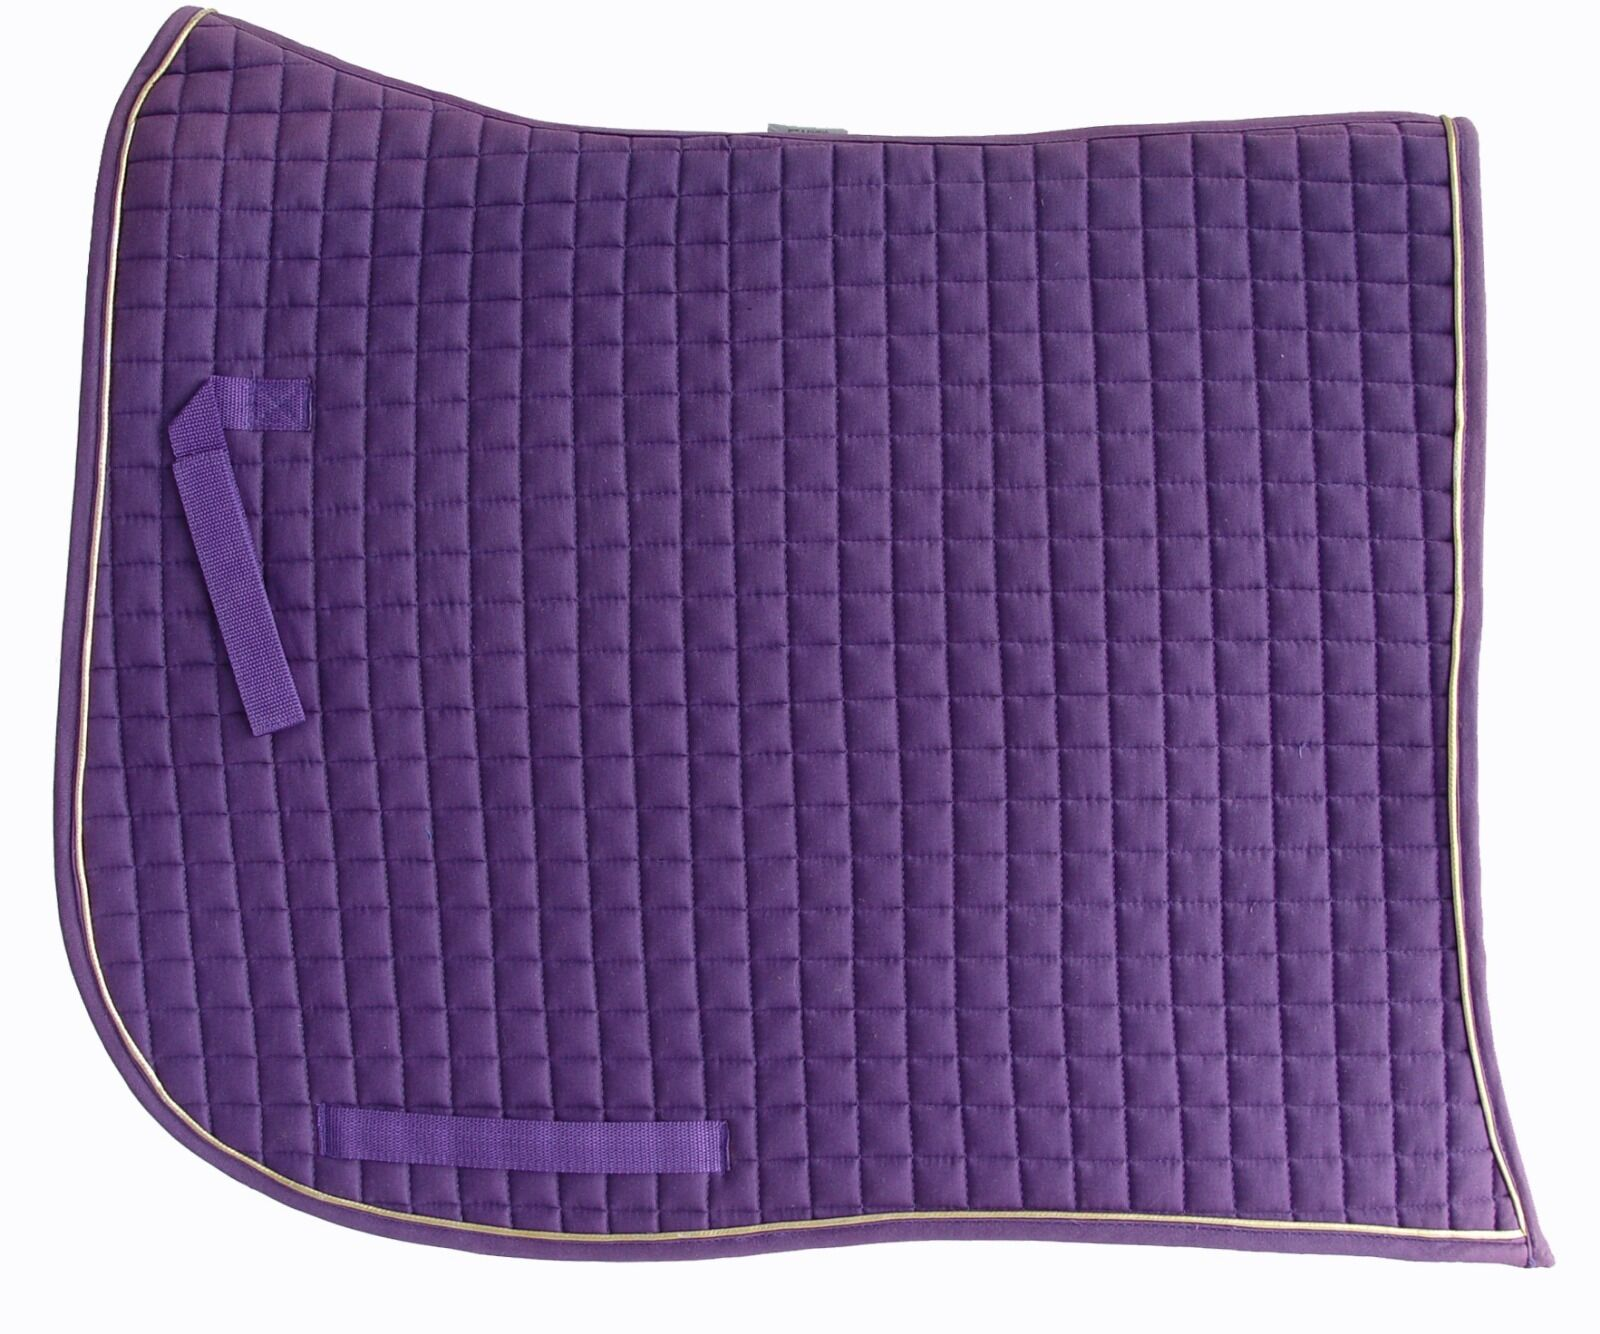 PRI Dressage Pad: Swan-tail, Swan-tail, Pad: Equu-Felt Quilt, Wither Relief, Farbe: lila/Gold d2a9e1